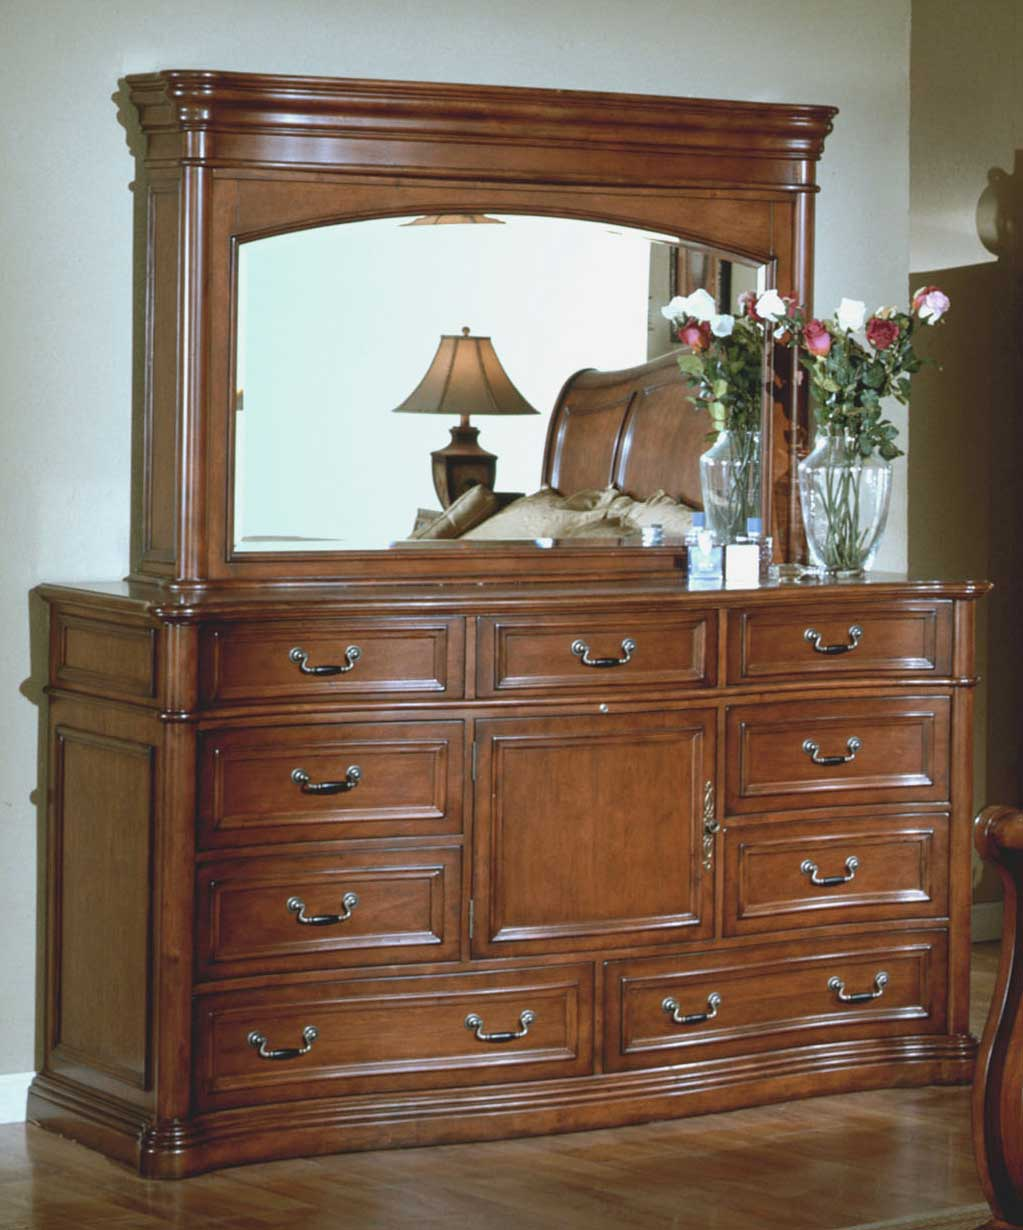 Signature Home Washington Dresser With Hideaway Mirror TV Hutch